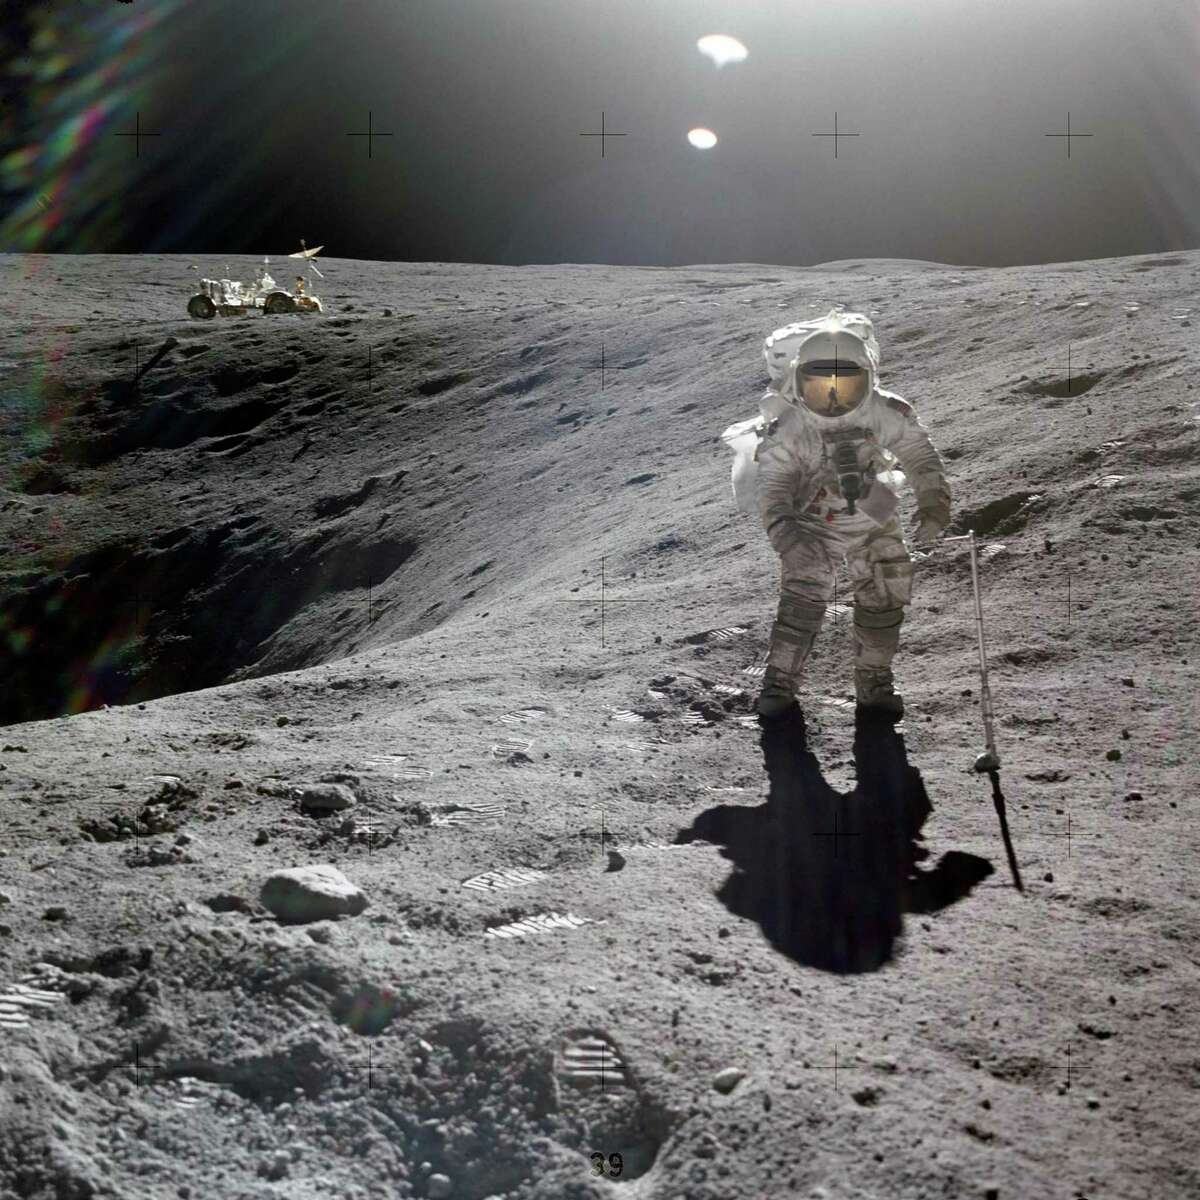 Astronaut Charles M. Duke Jr. collects lunar samples during the first Apollo 16 extravehicular activity at the Descartes landing site on April 21, 1972.